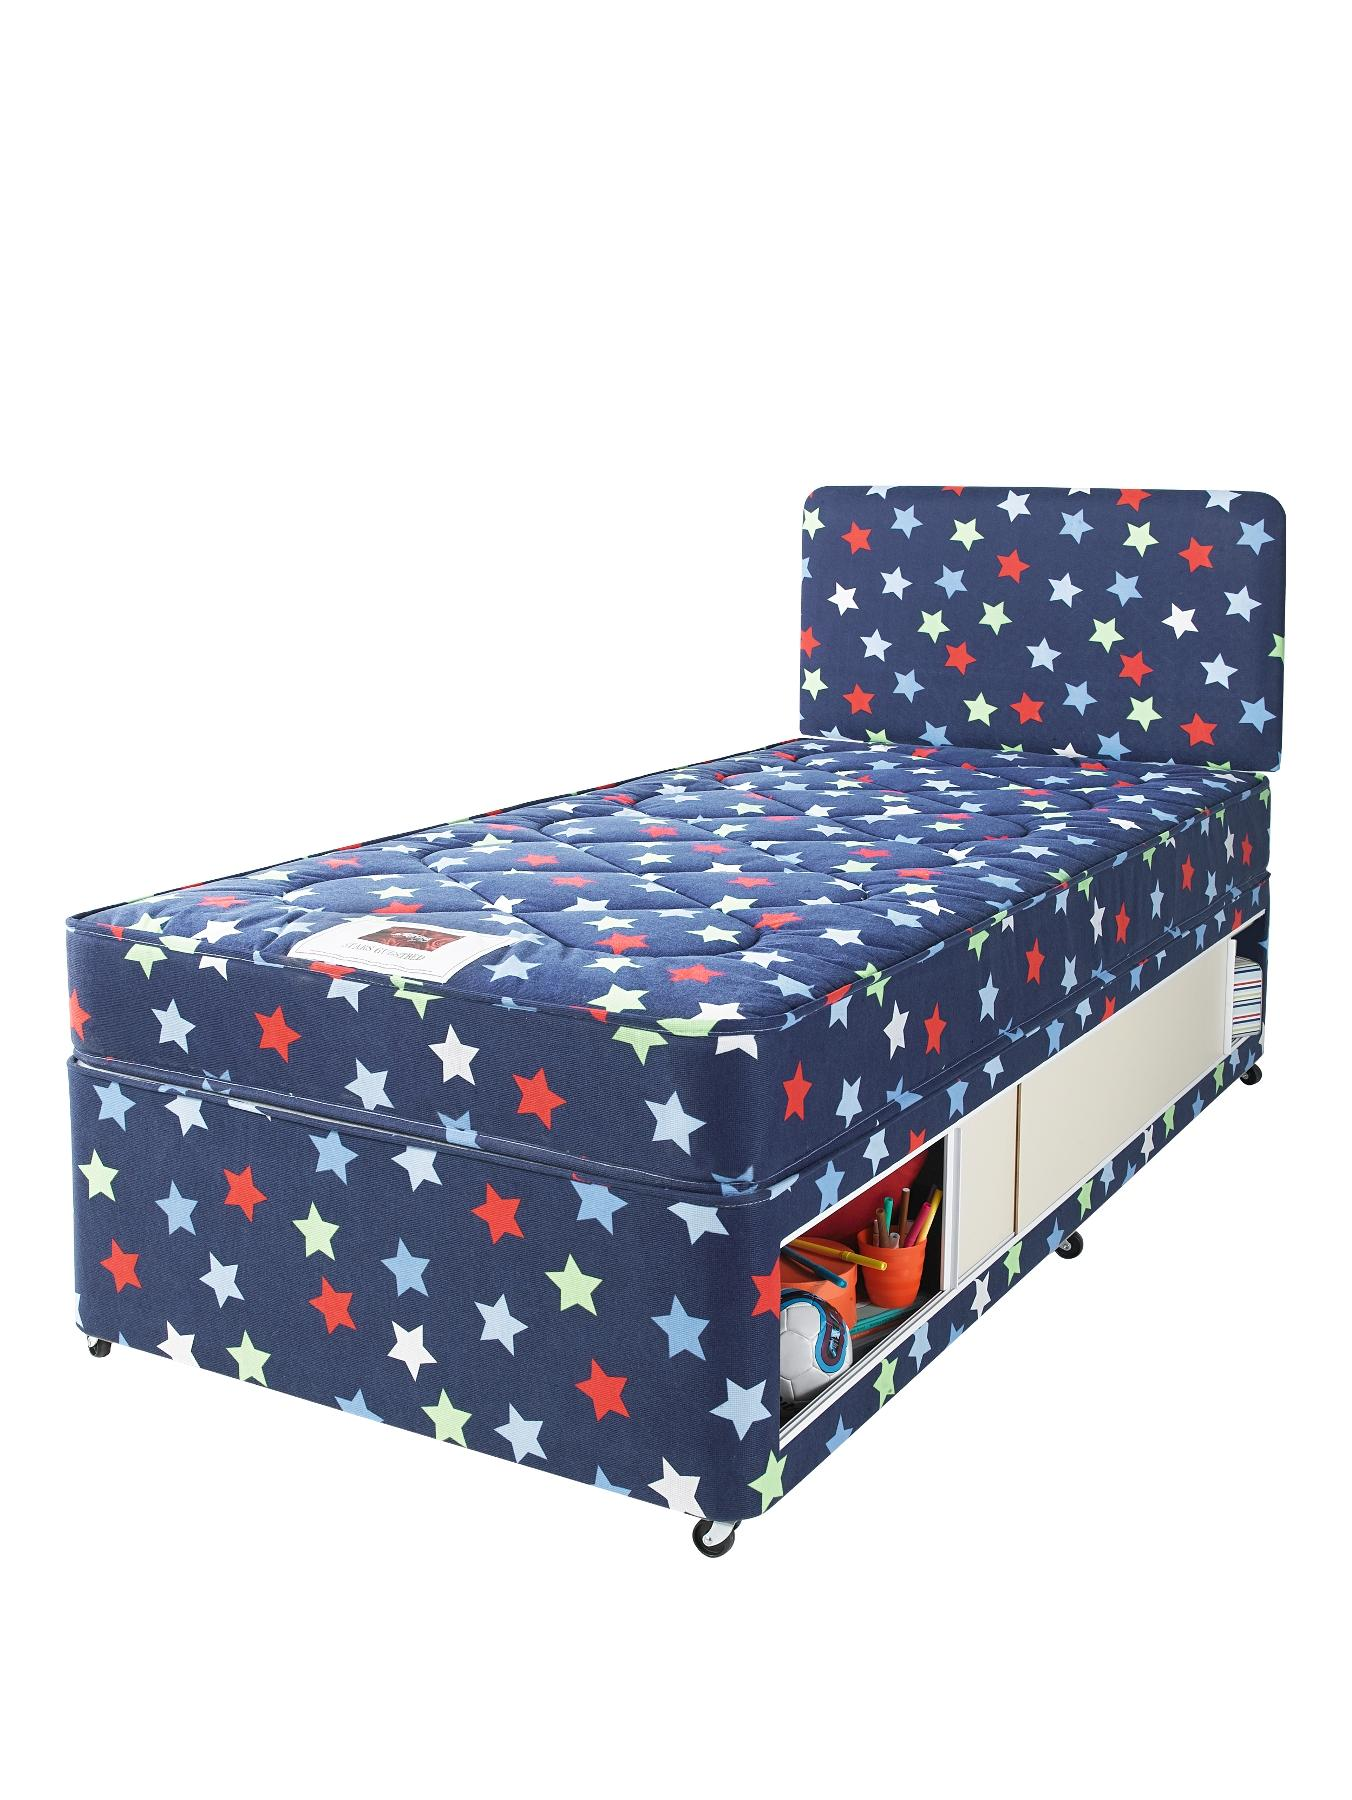 Picture of: Airsprung Stars And Butterflies Small Single Kids Storage Divan With Free Headboard Pink Blue Littlewoods Catalogue Home Shopping